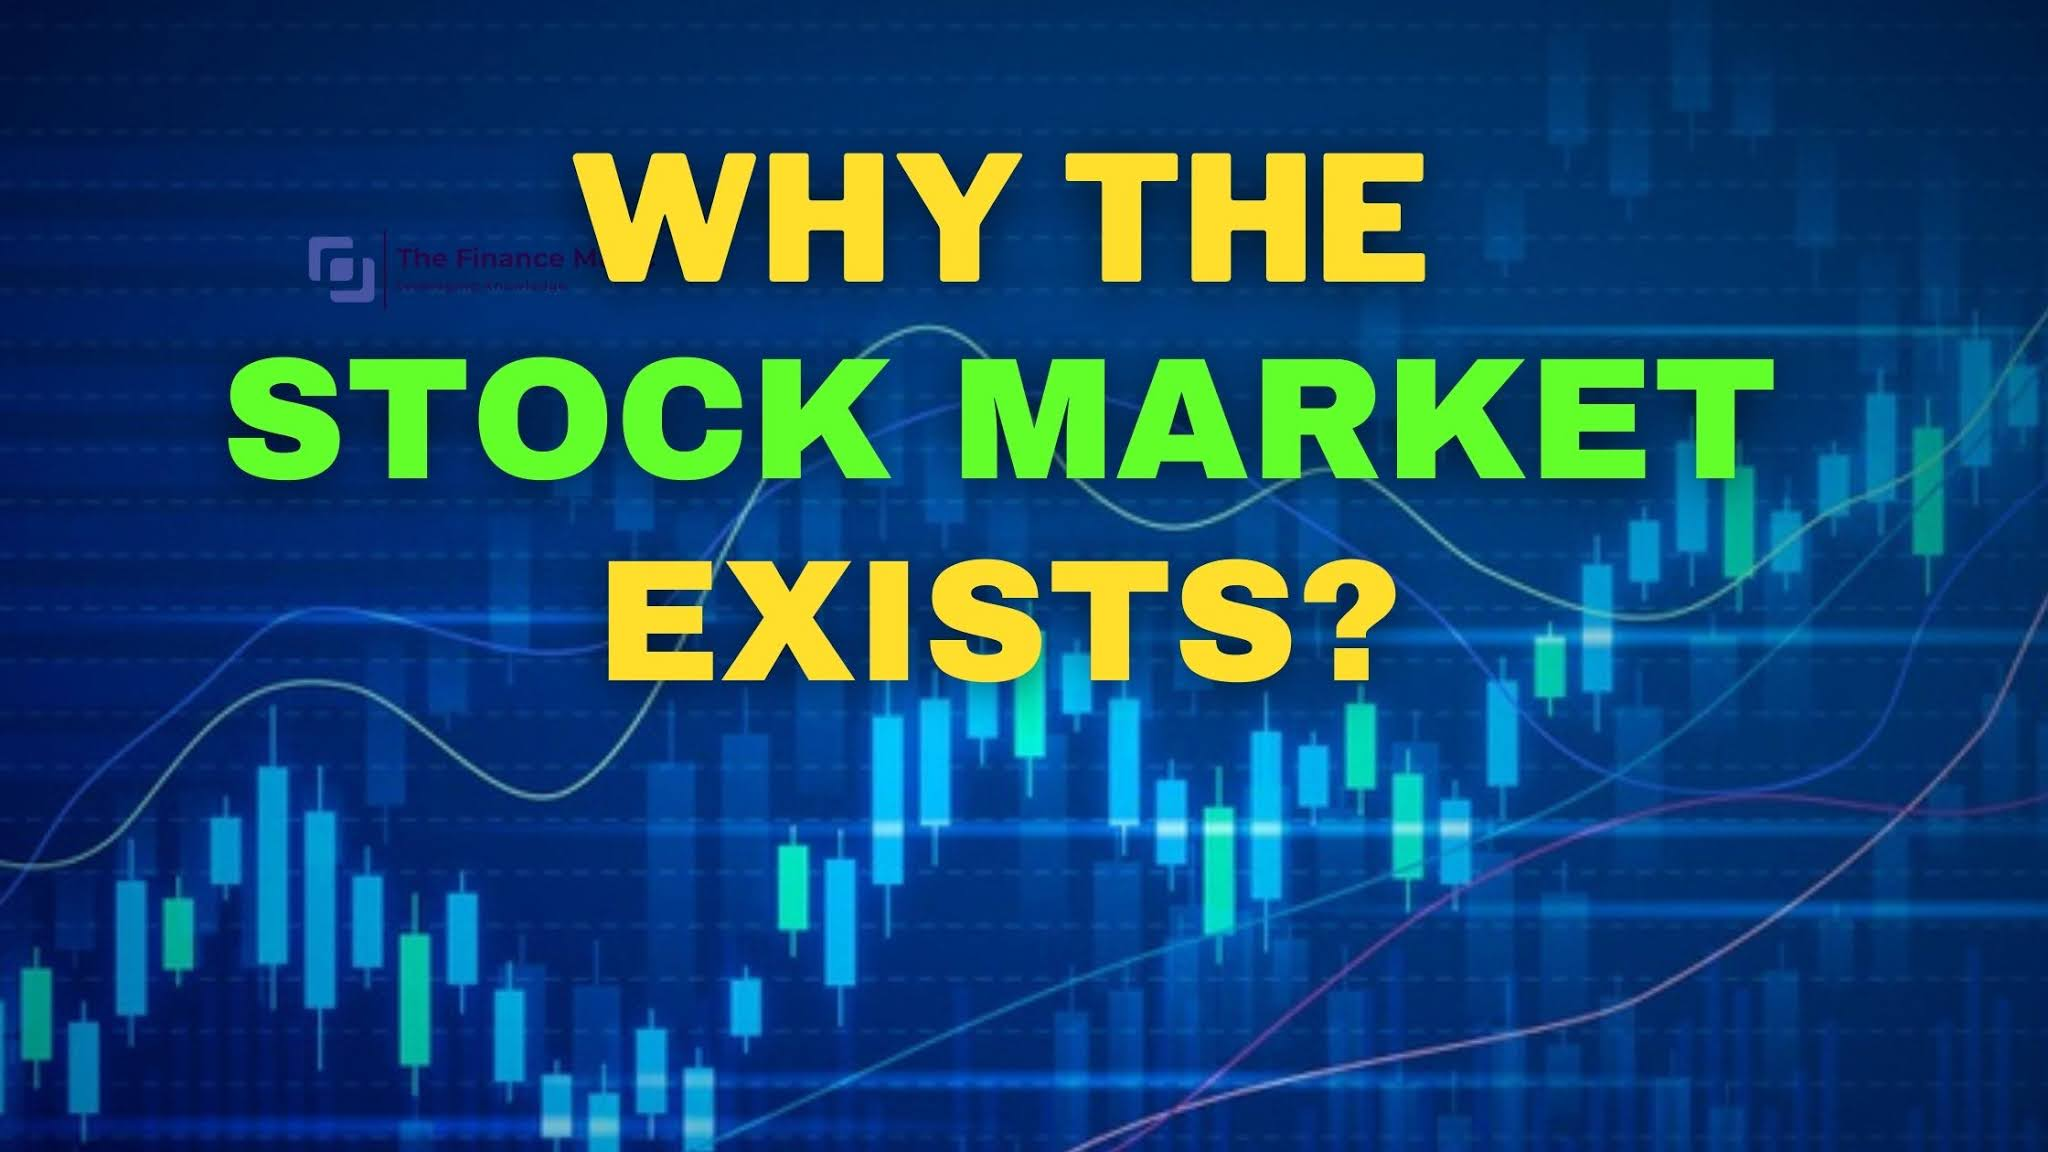 Why the stock market exists?